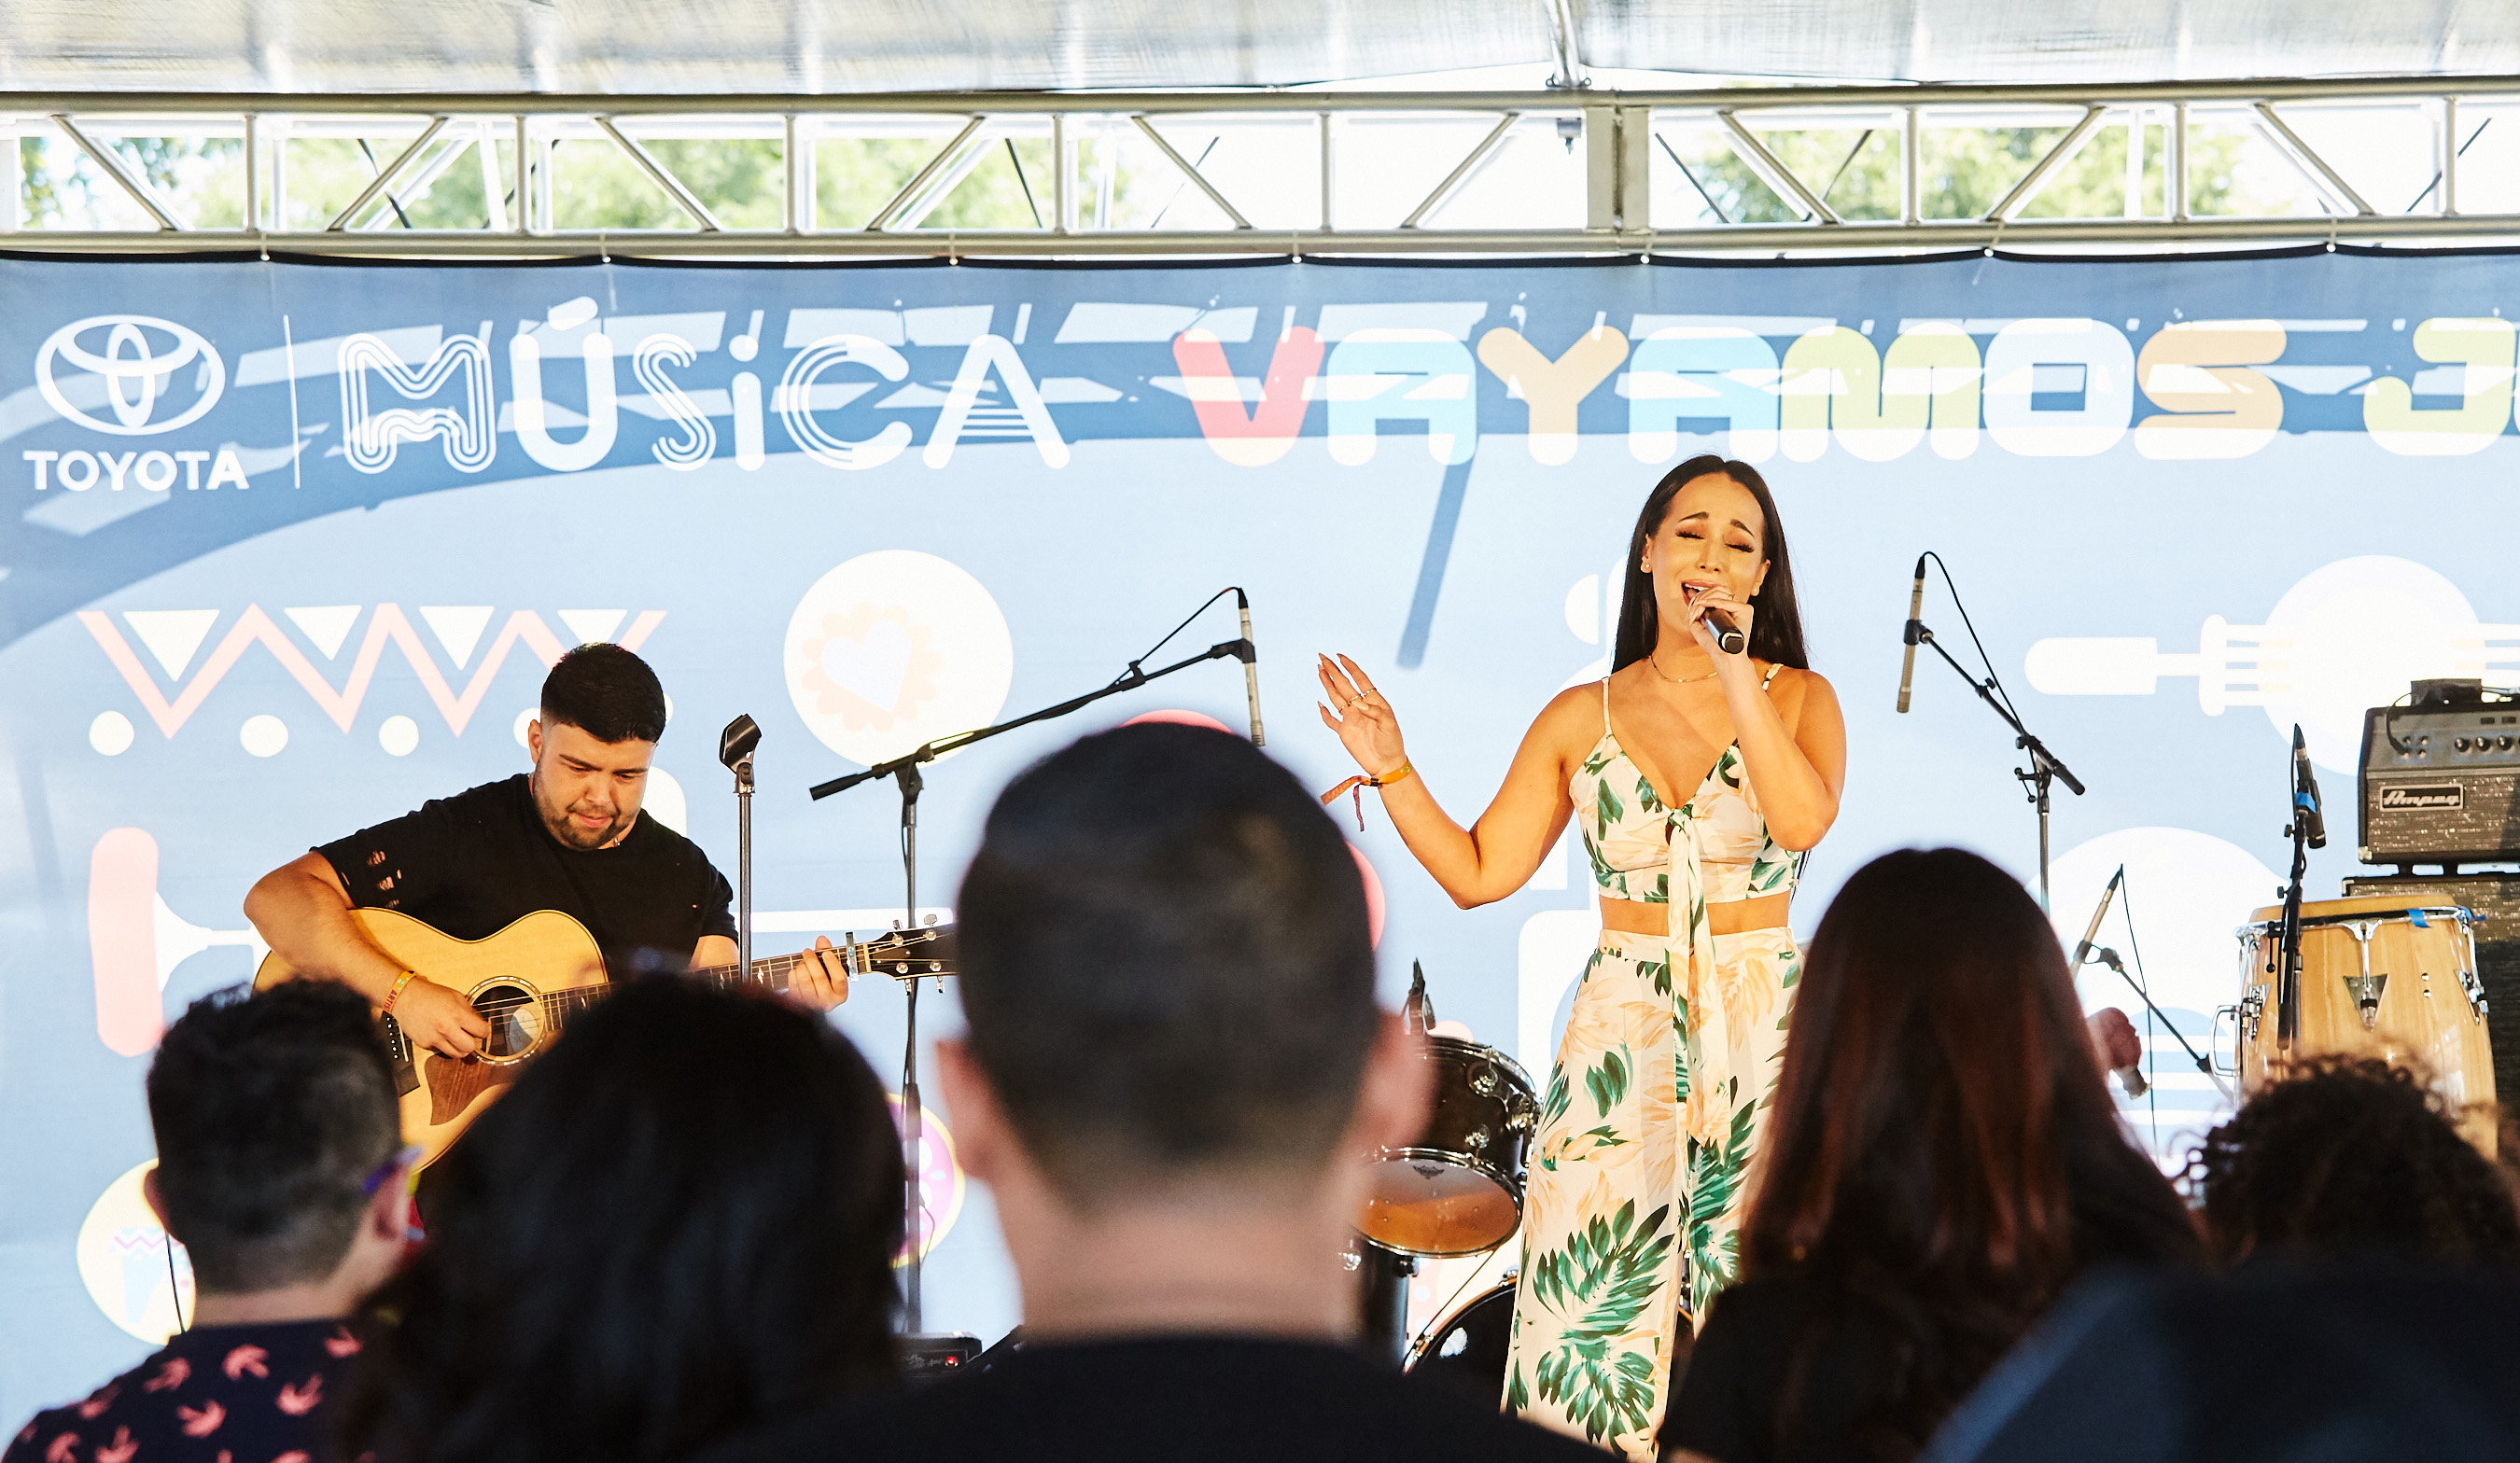 Victoria La Mala captivated the audience at the Toyota Music on day 2 of Ruido Fest 2017.